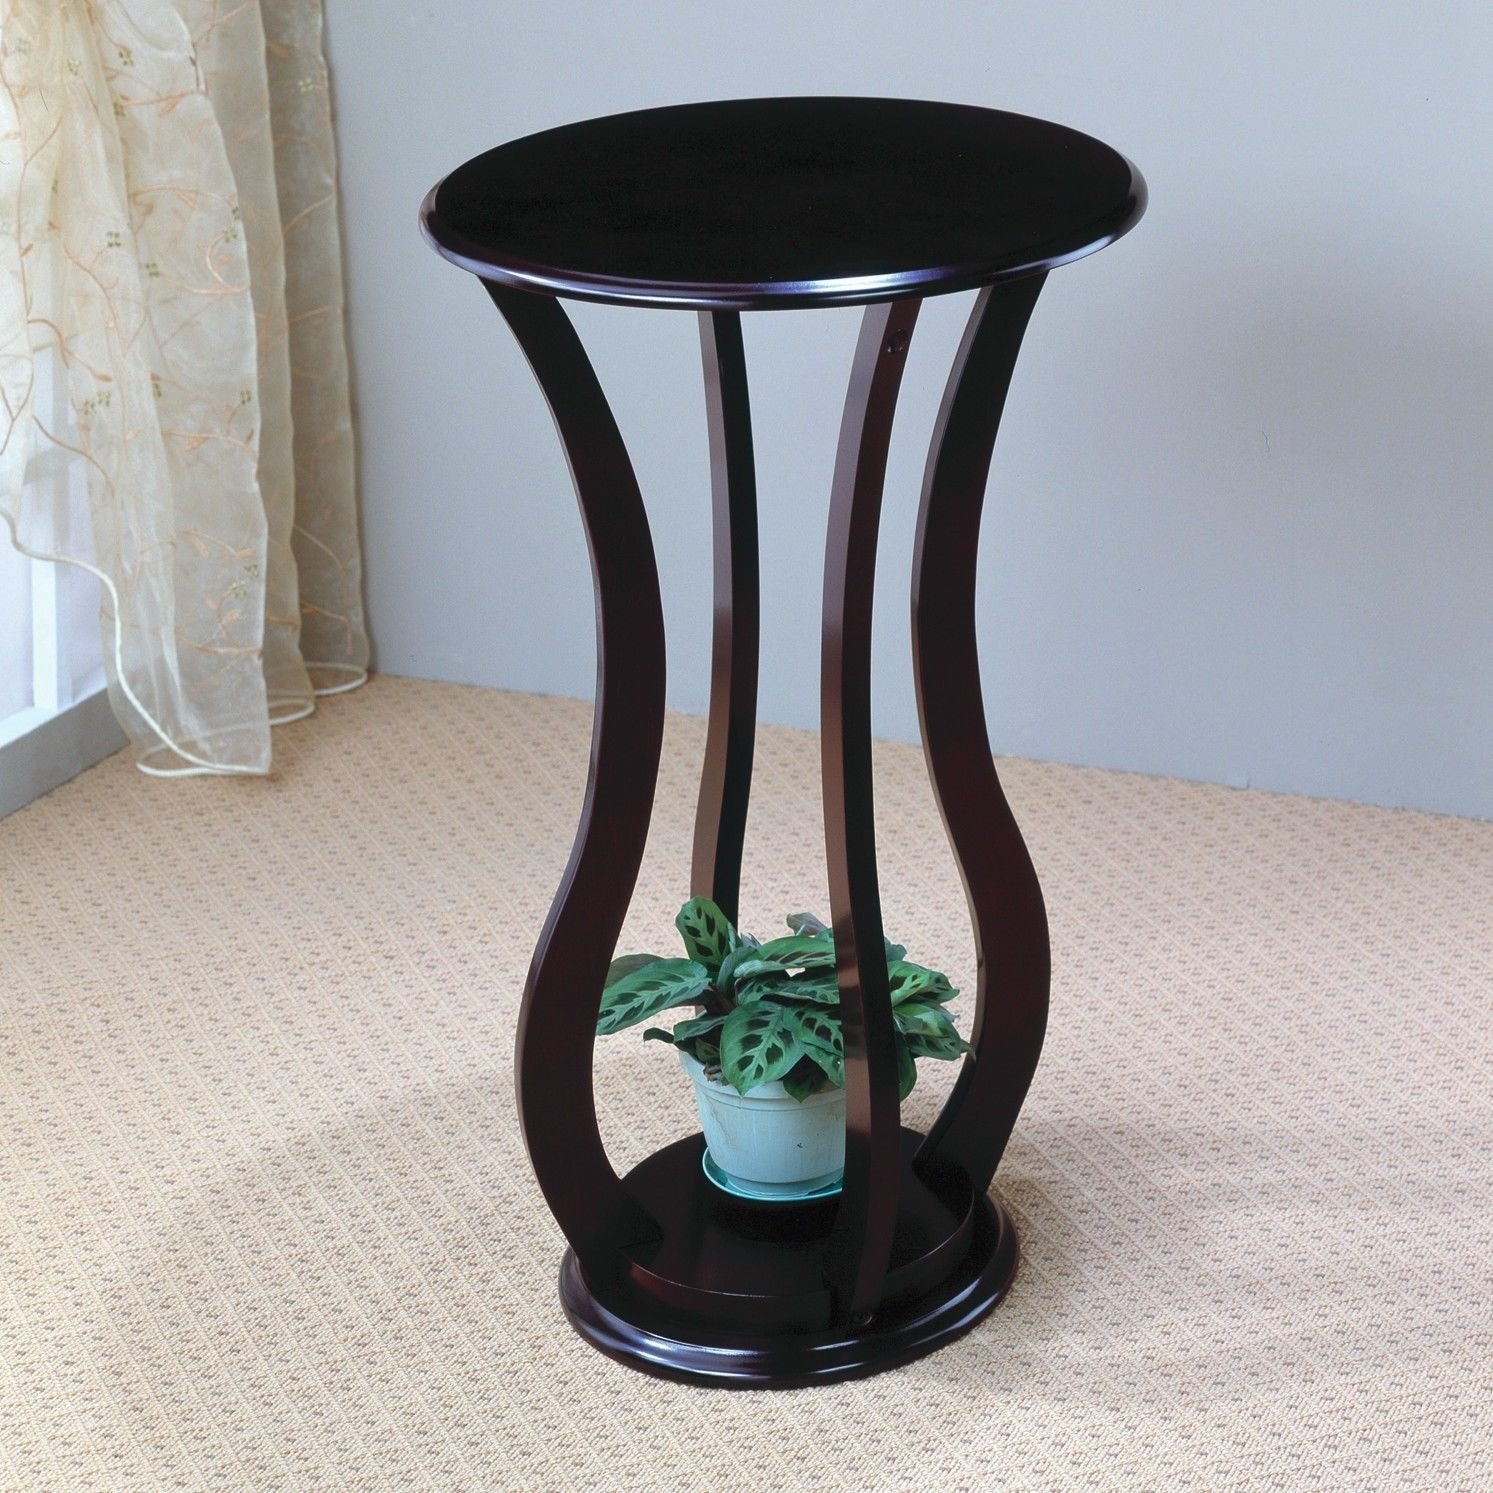 indoor plant stand wood round pedestal accent table modern display furniture new small patio end cushions portable outdoor umbrella chic pier sofa swing cover oval coffee decor